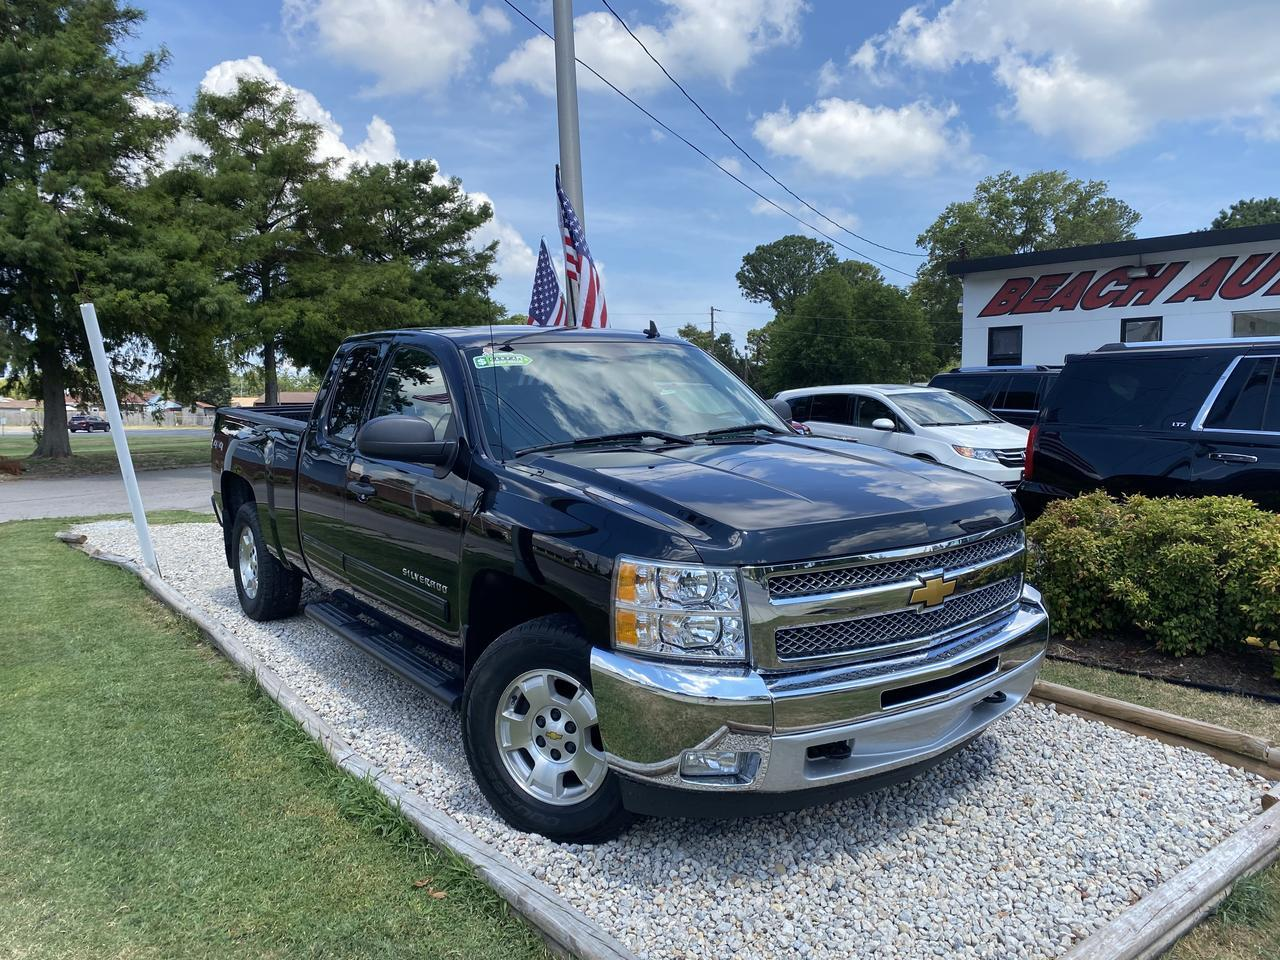 2013 CHEVROLET SILVERADO 1500 LT EXTENDED CAB 4X4, WARRANTY, TOW PKG, RUNNING BOARDS, AUX PORT, ONSTAR, CLEAN CARFAX!